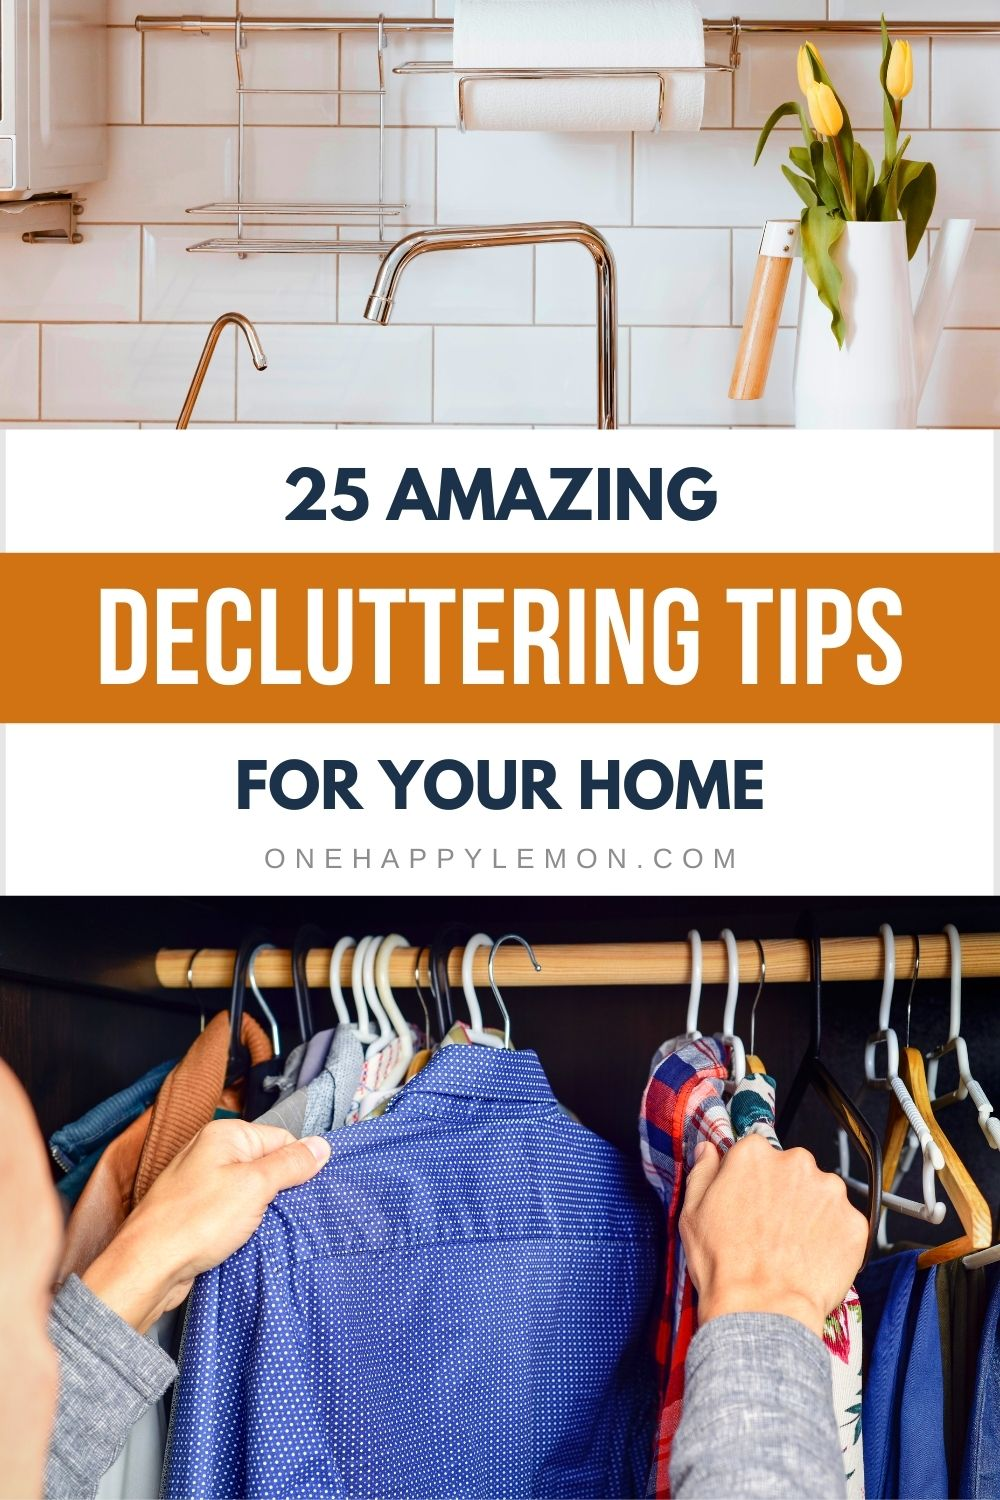 When it comes to decluttering, it is quite normal to become overwhelmed. You should always declutter the things you no longer use and no longer feel you need it. Here are some decluttering home tips that you can apply today. #homehacks #decluttering #DIY #homemaintenance